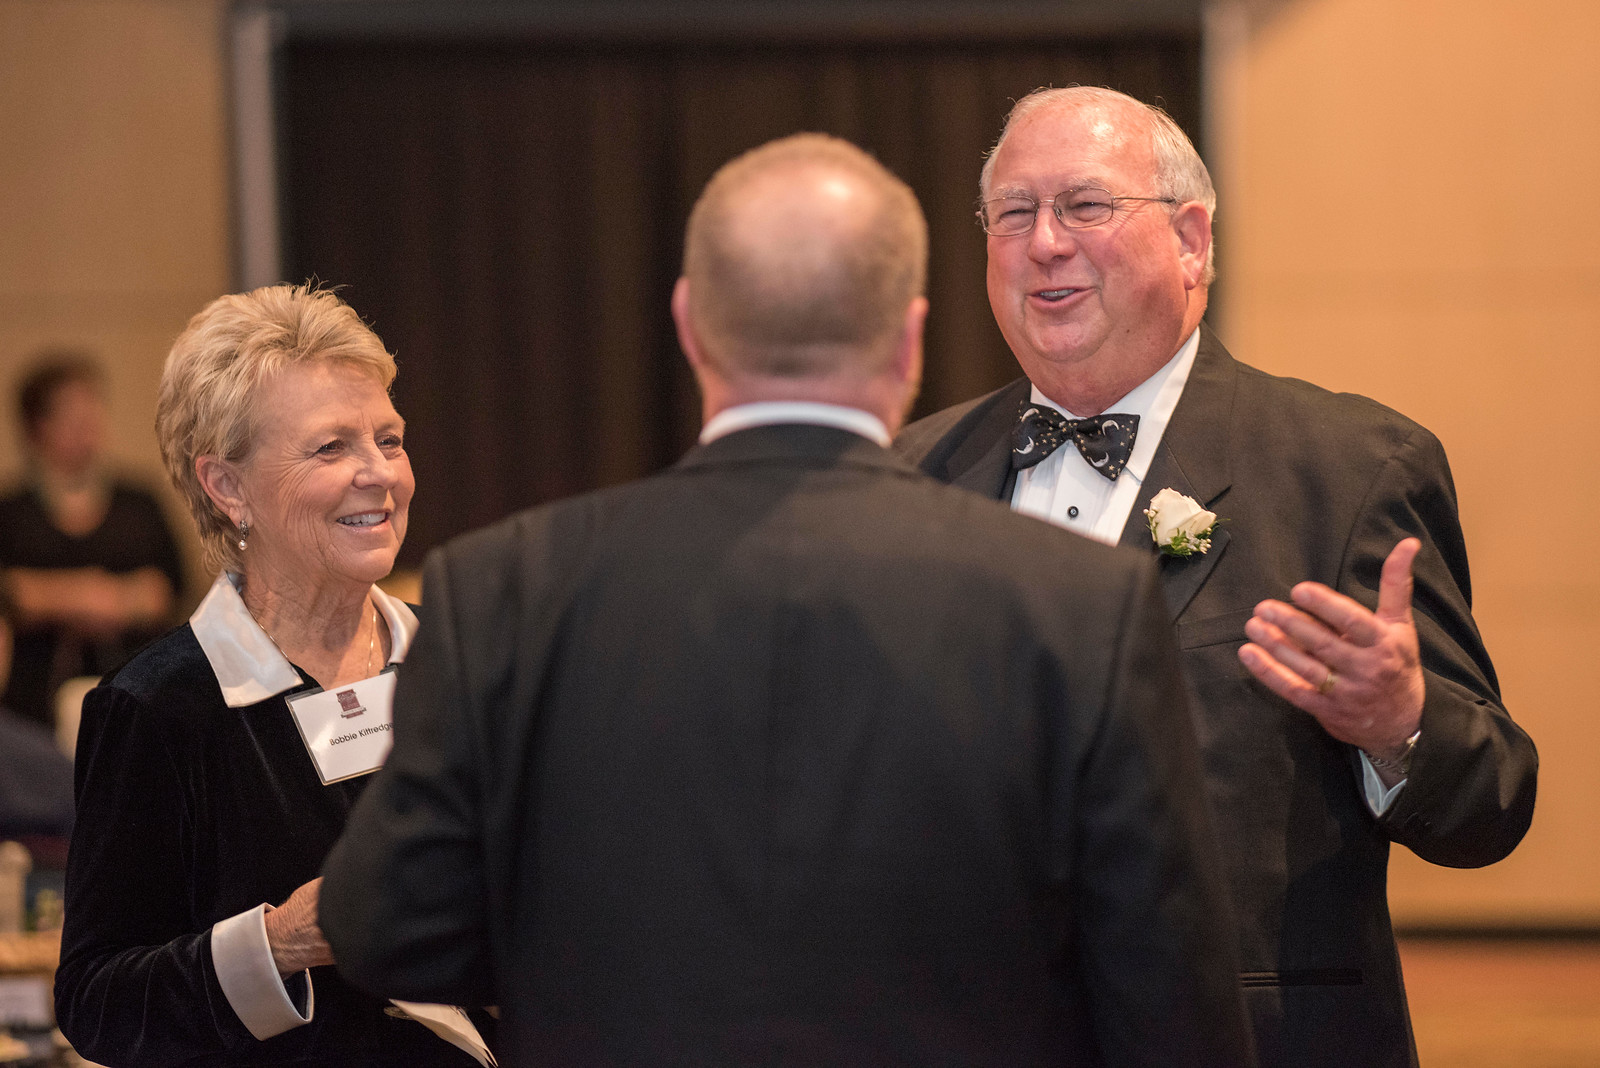 Bobbie Kittredge (left), Robert Kittredge (right), guests and honorees enjoy the Distinguished Alumni Dinner on Friday, March 24, 2017 in Chico, Calif. (Jason Halley/University Photographer)